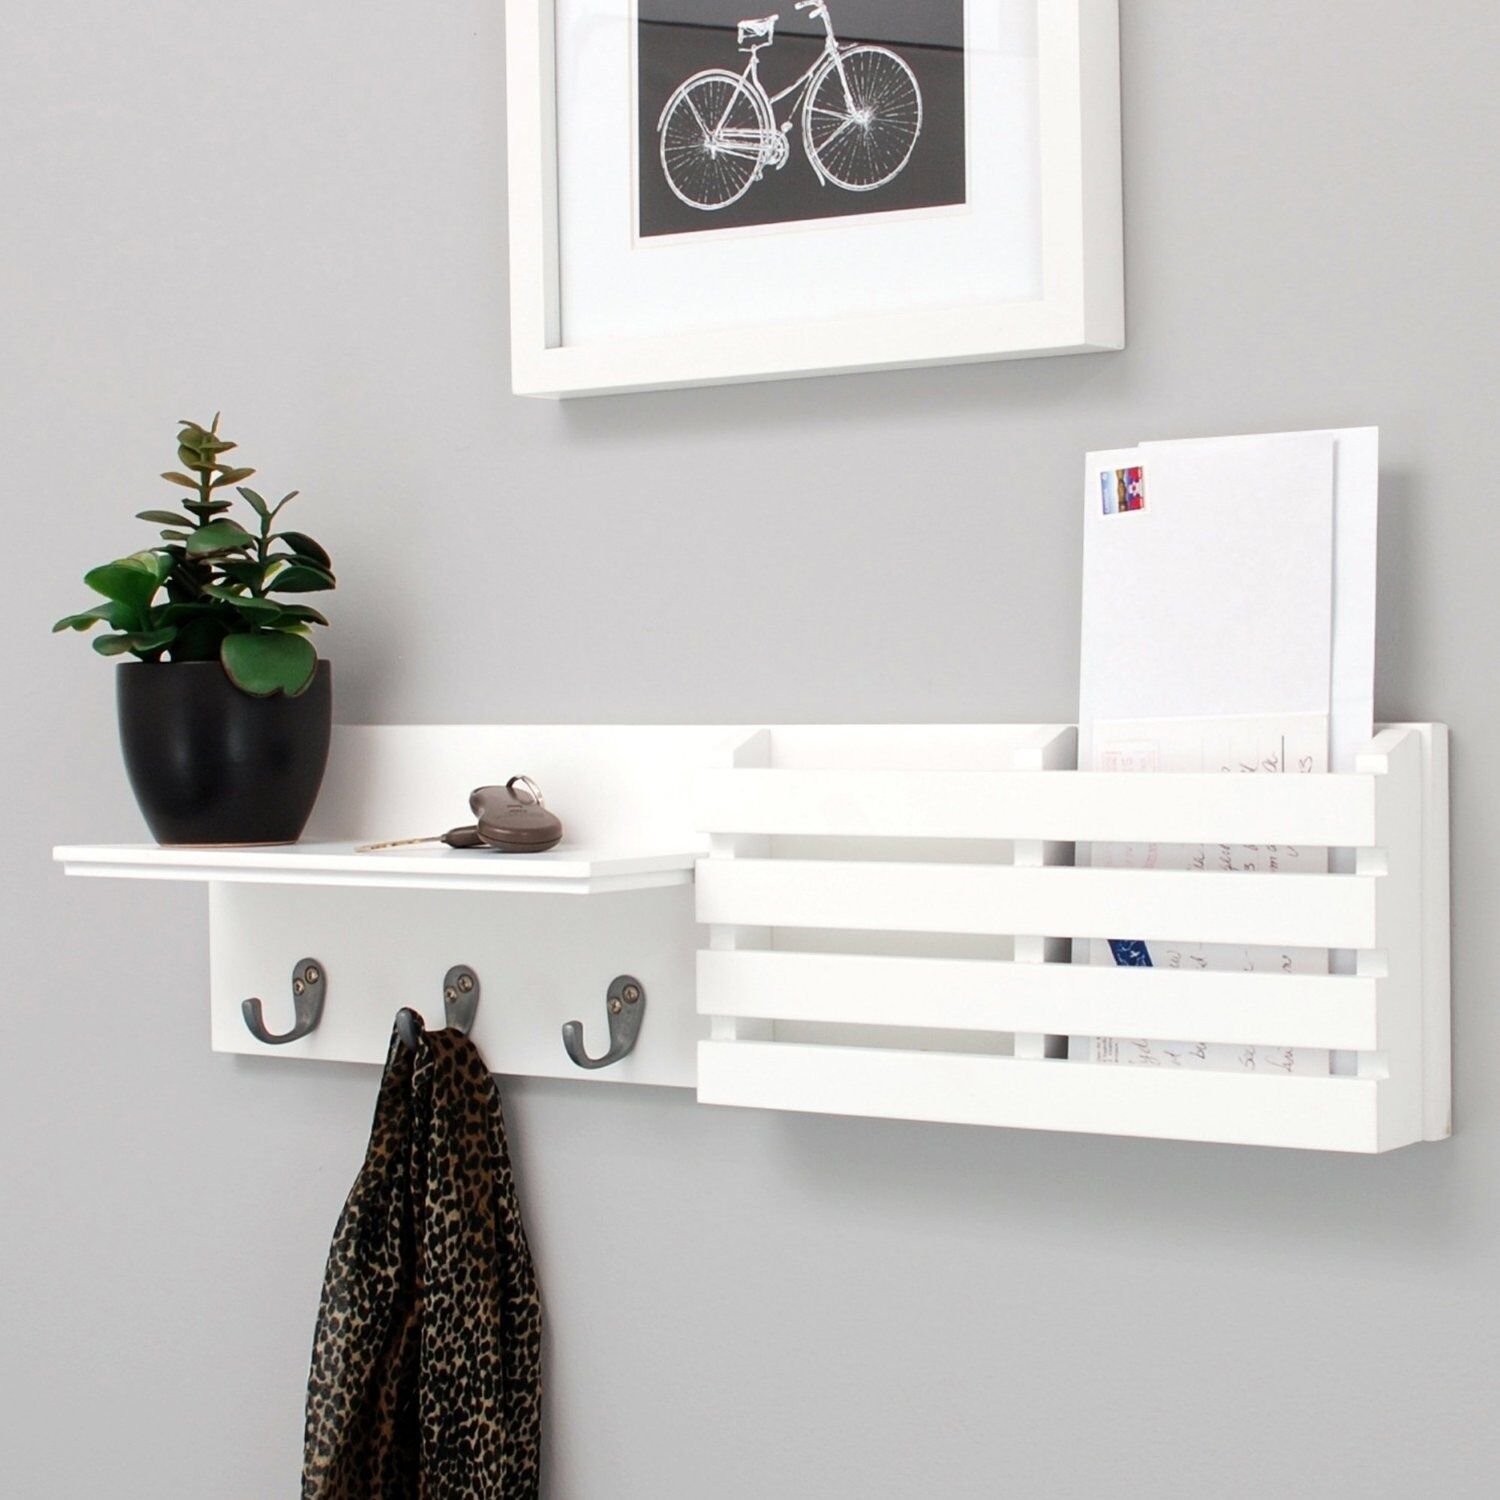 Nexxt wooden modern wall shelves ebay nexxt sydney wall shelf and mail holder with 3 hooks 24 inch by 6 inch white amipublicfo Images